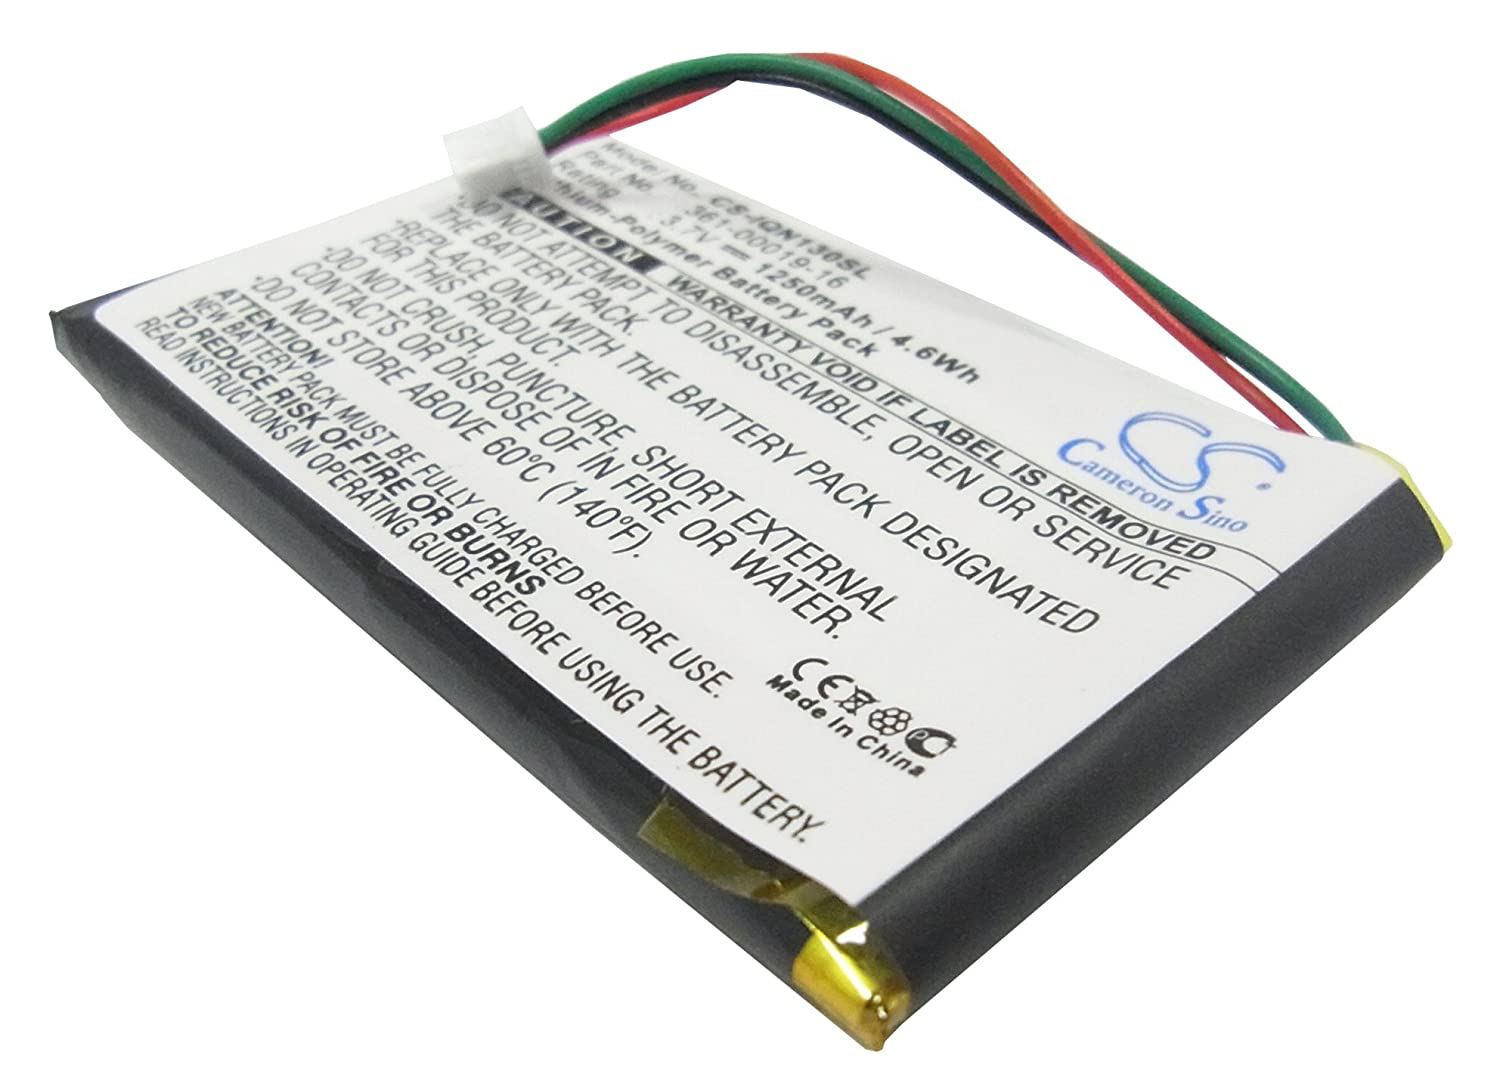 1250mAh Battery For Garmin Nuvi 1300, Nuvi 1350, Nuvi 1350T, Nuvi 1370 VINTRONS Digi-Tech CS-IQN130SL